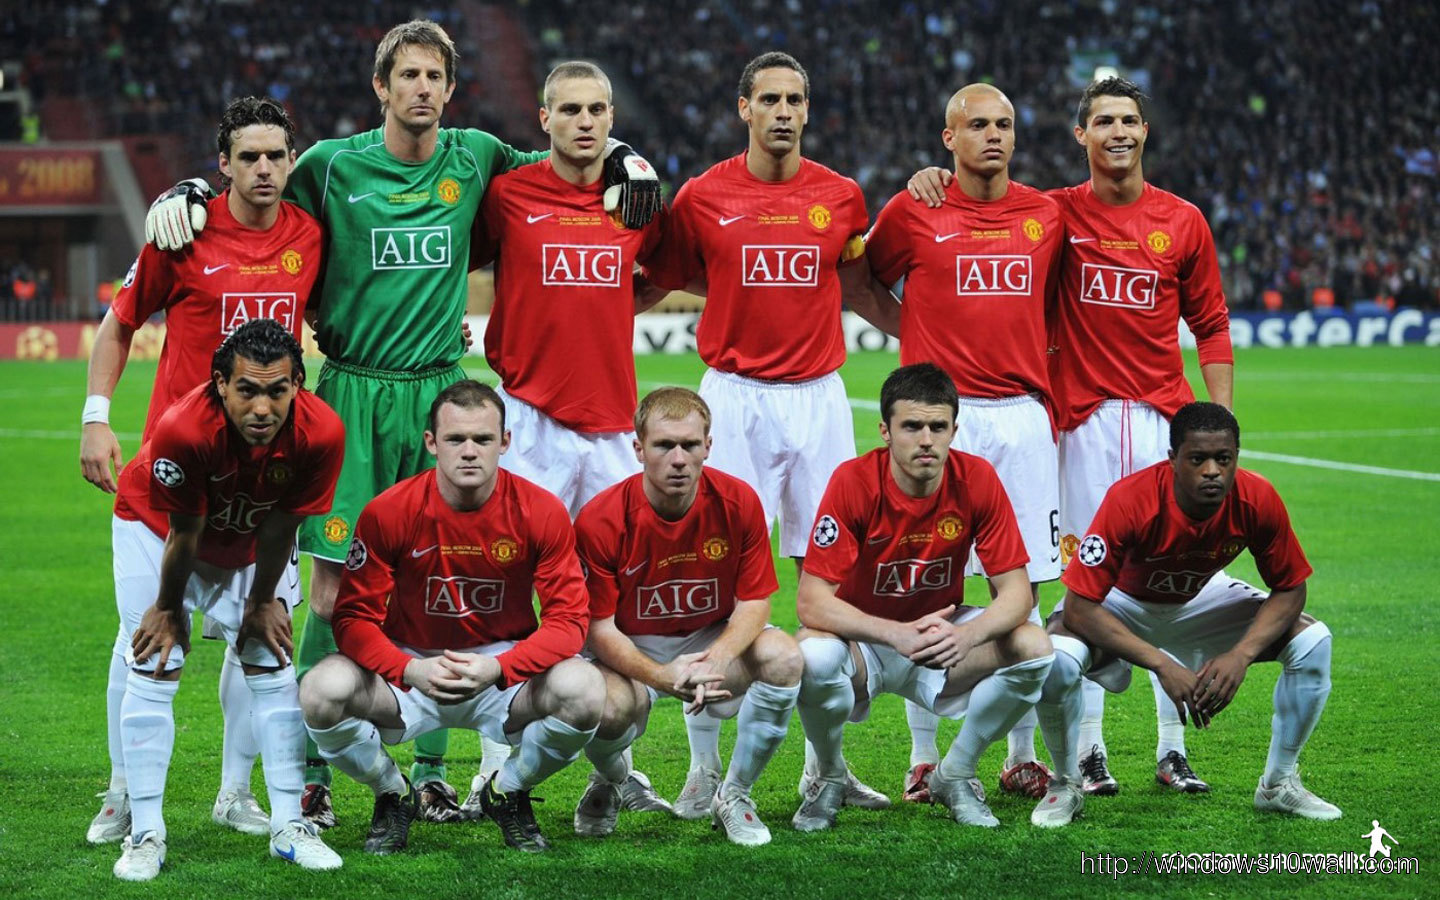 Manchester United FC wallpaper free download for mobiles